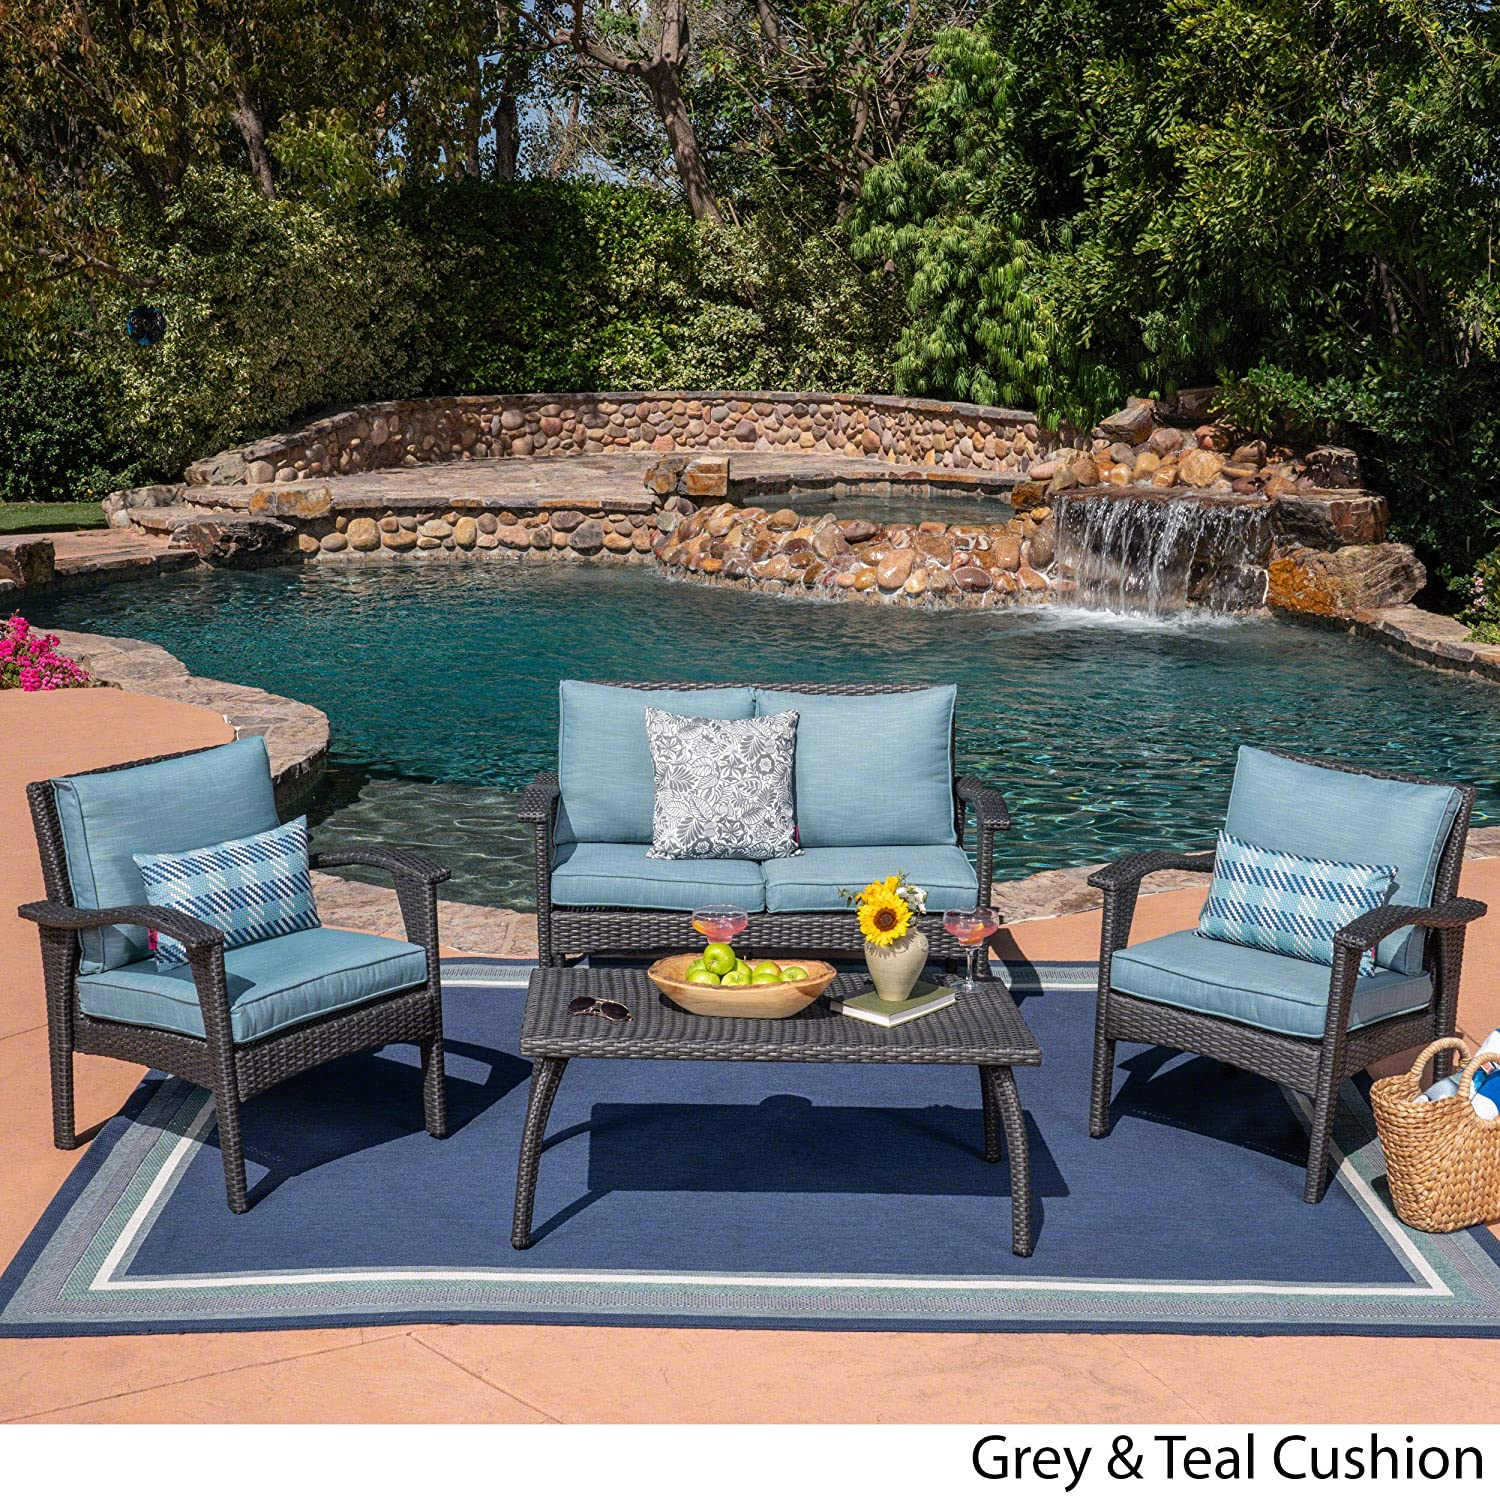 Great Deal Furniture 304148 Louise Outdoor 4 Seater Grey Wicker Chat Set with Teal Water Resistant Cushions